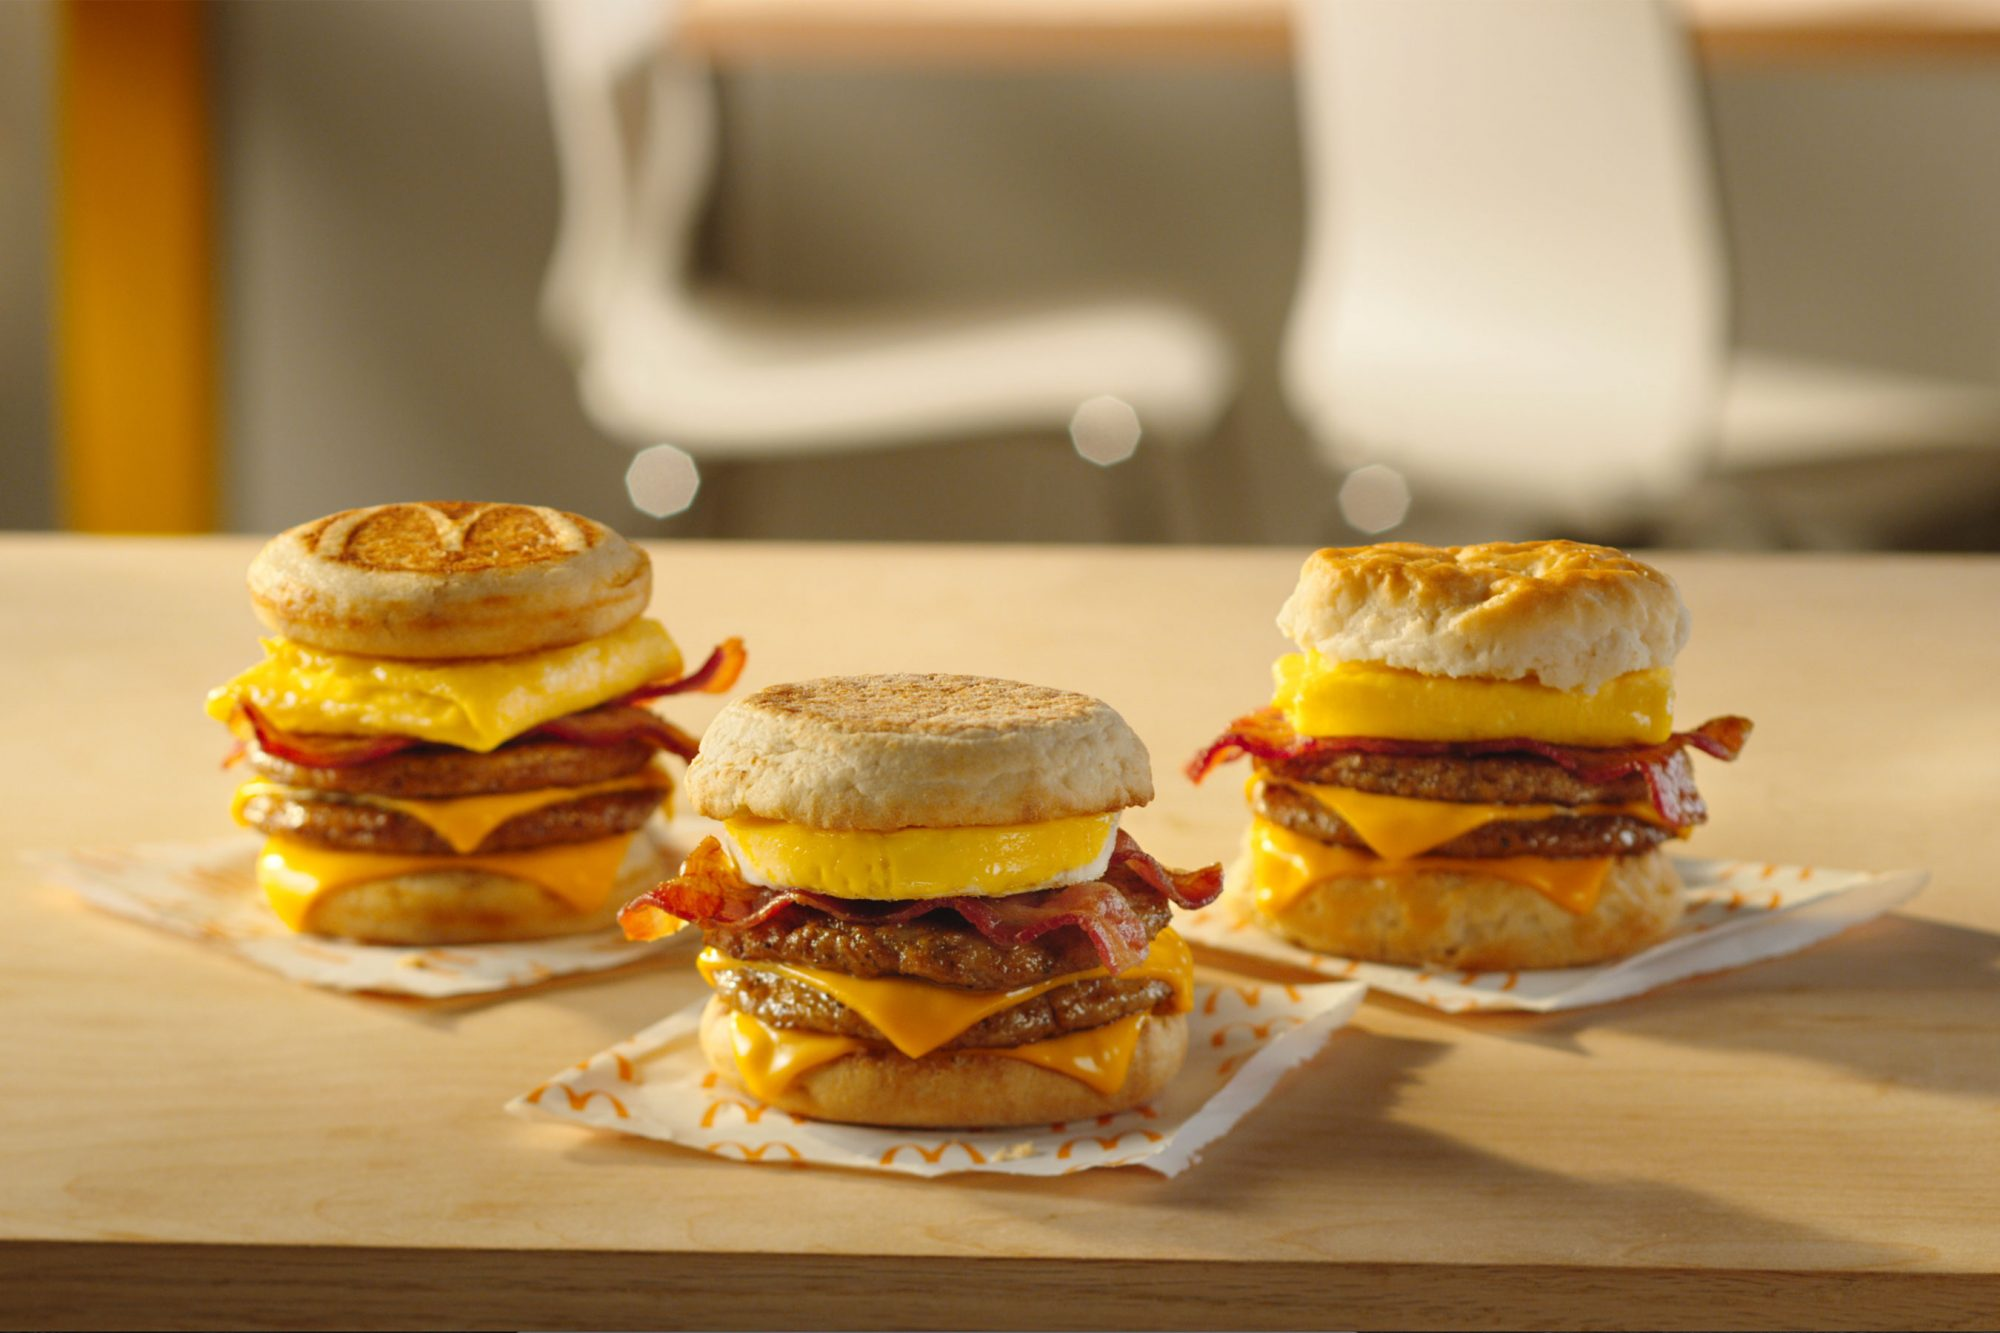 The Most Ridiculous New Fast Food Menu Items of 2018